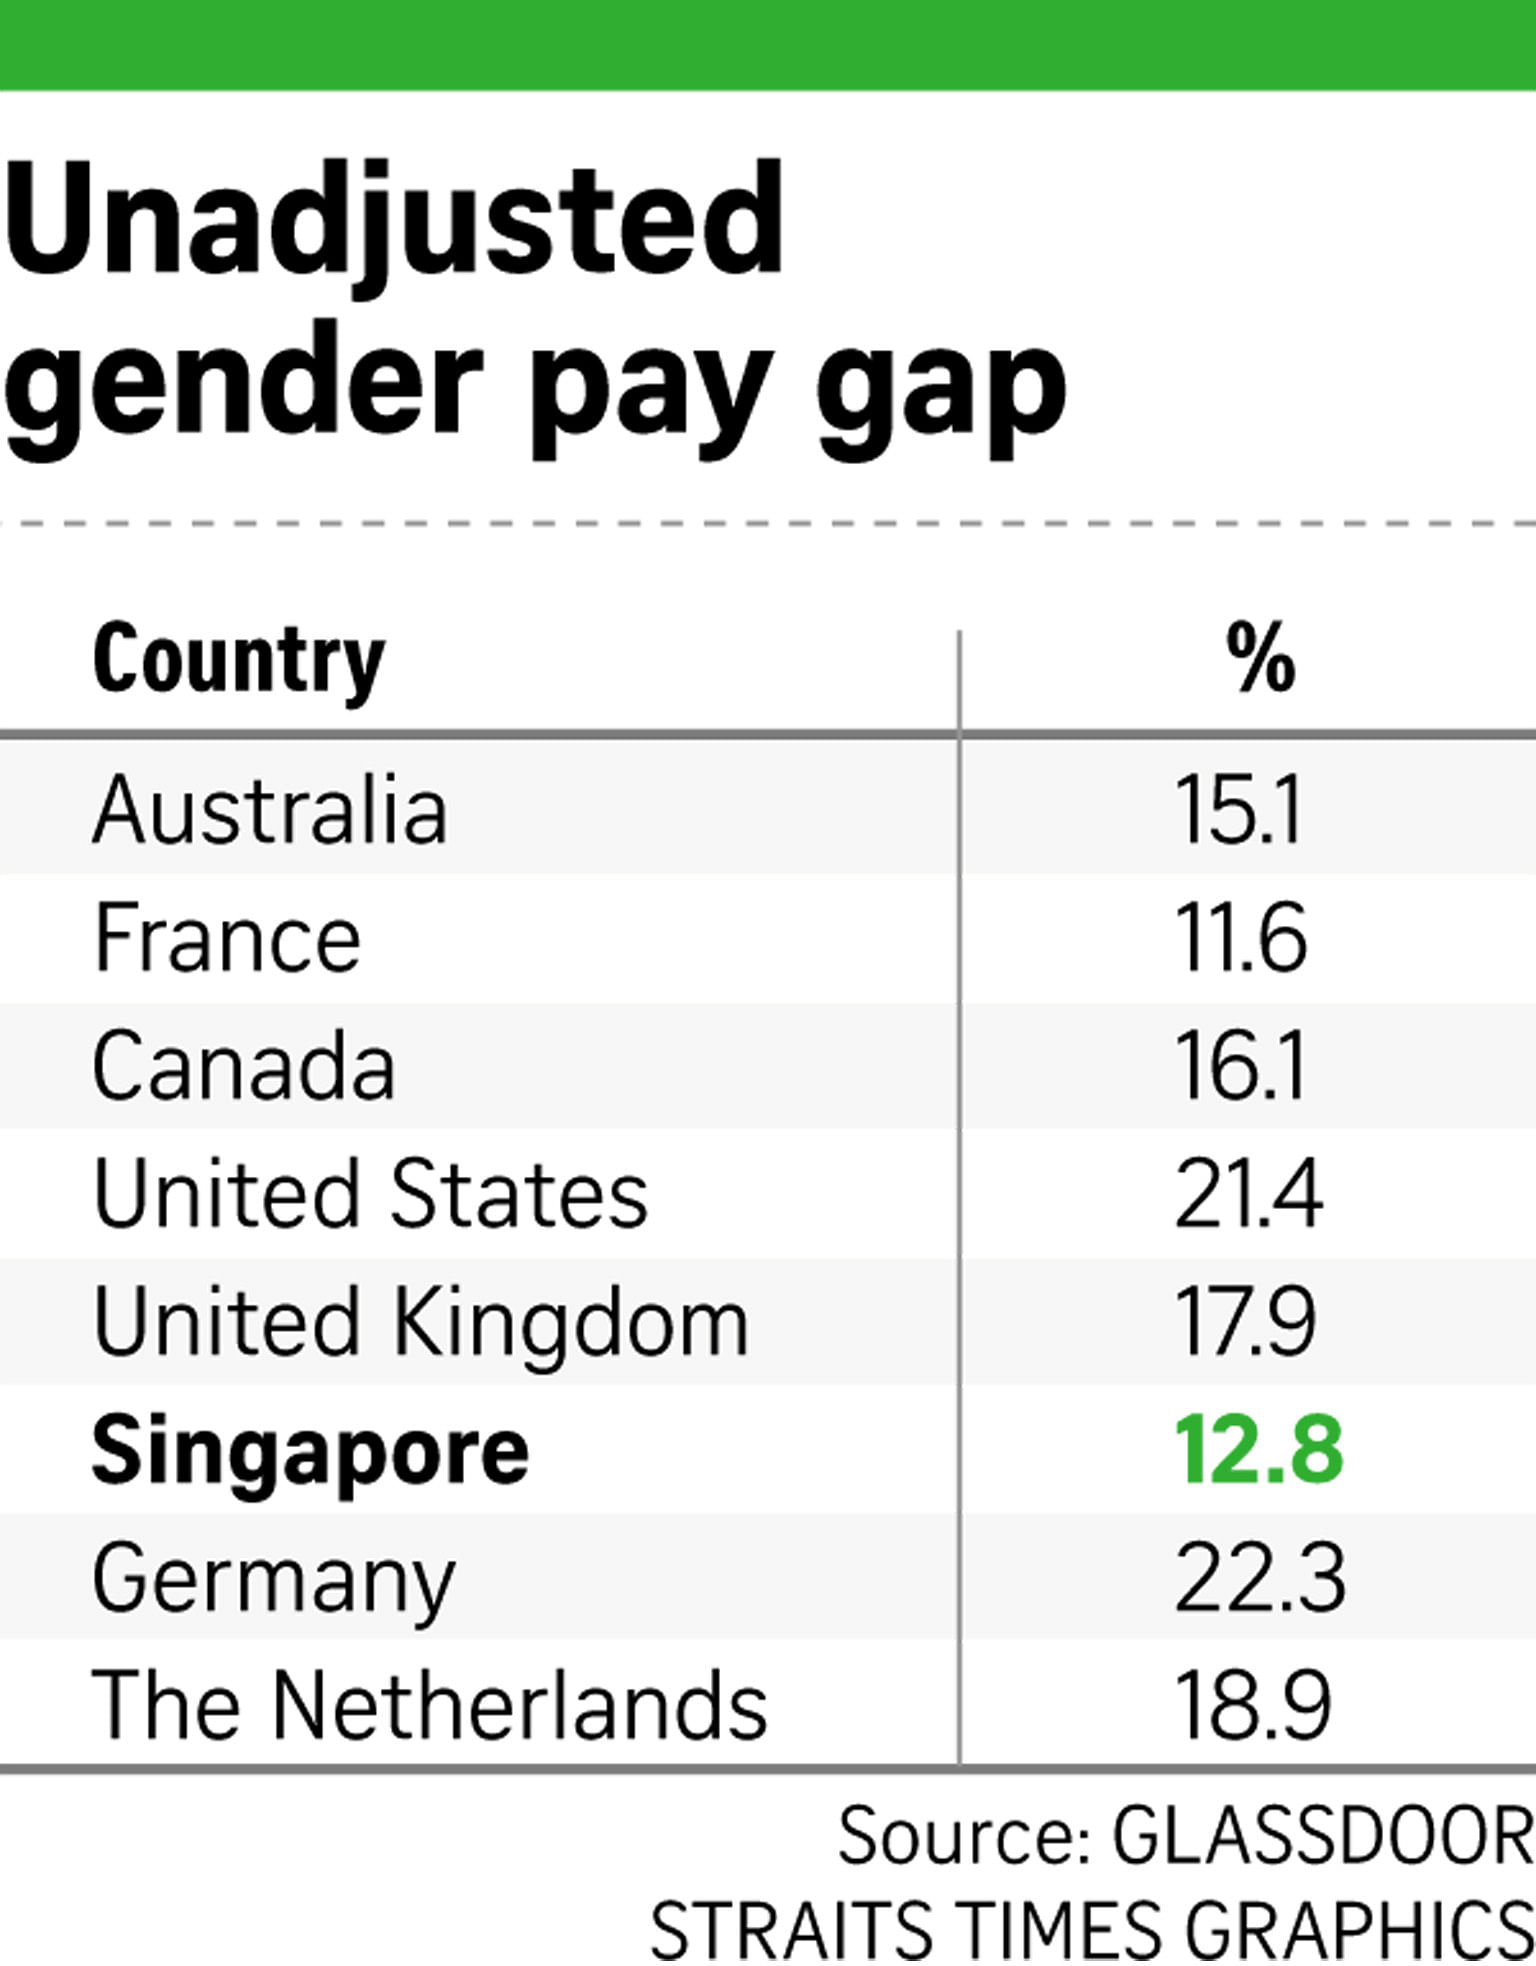 Women here earning 13% less than men: Glassdoor study